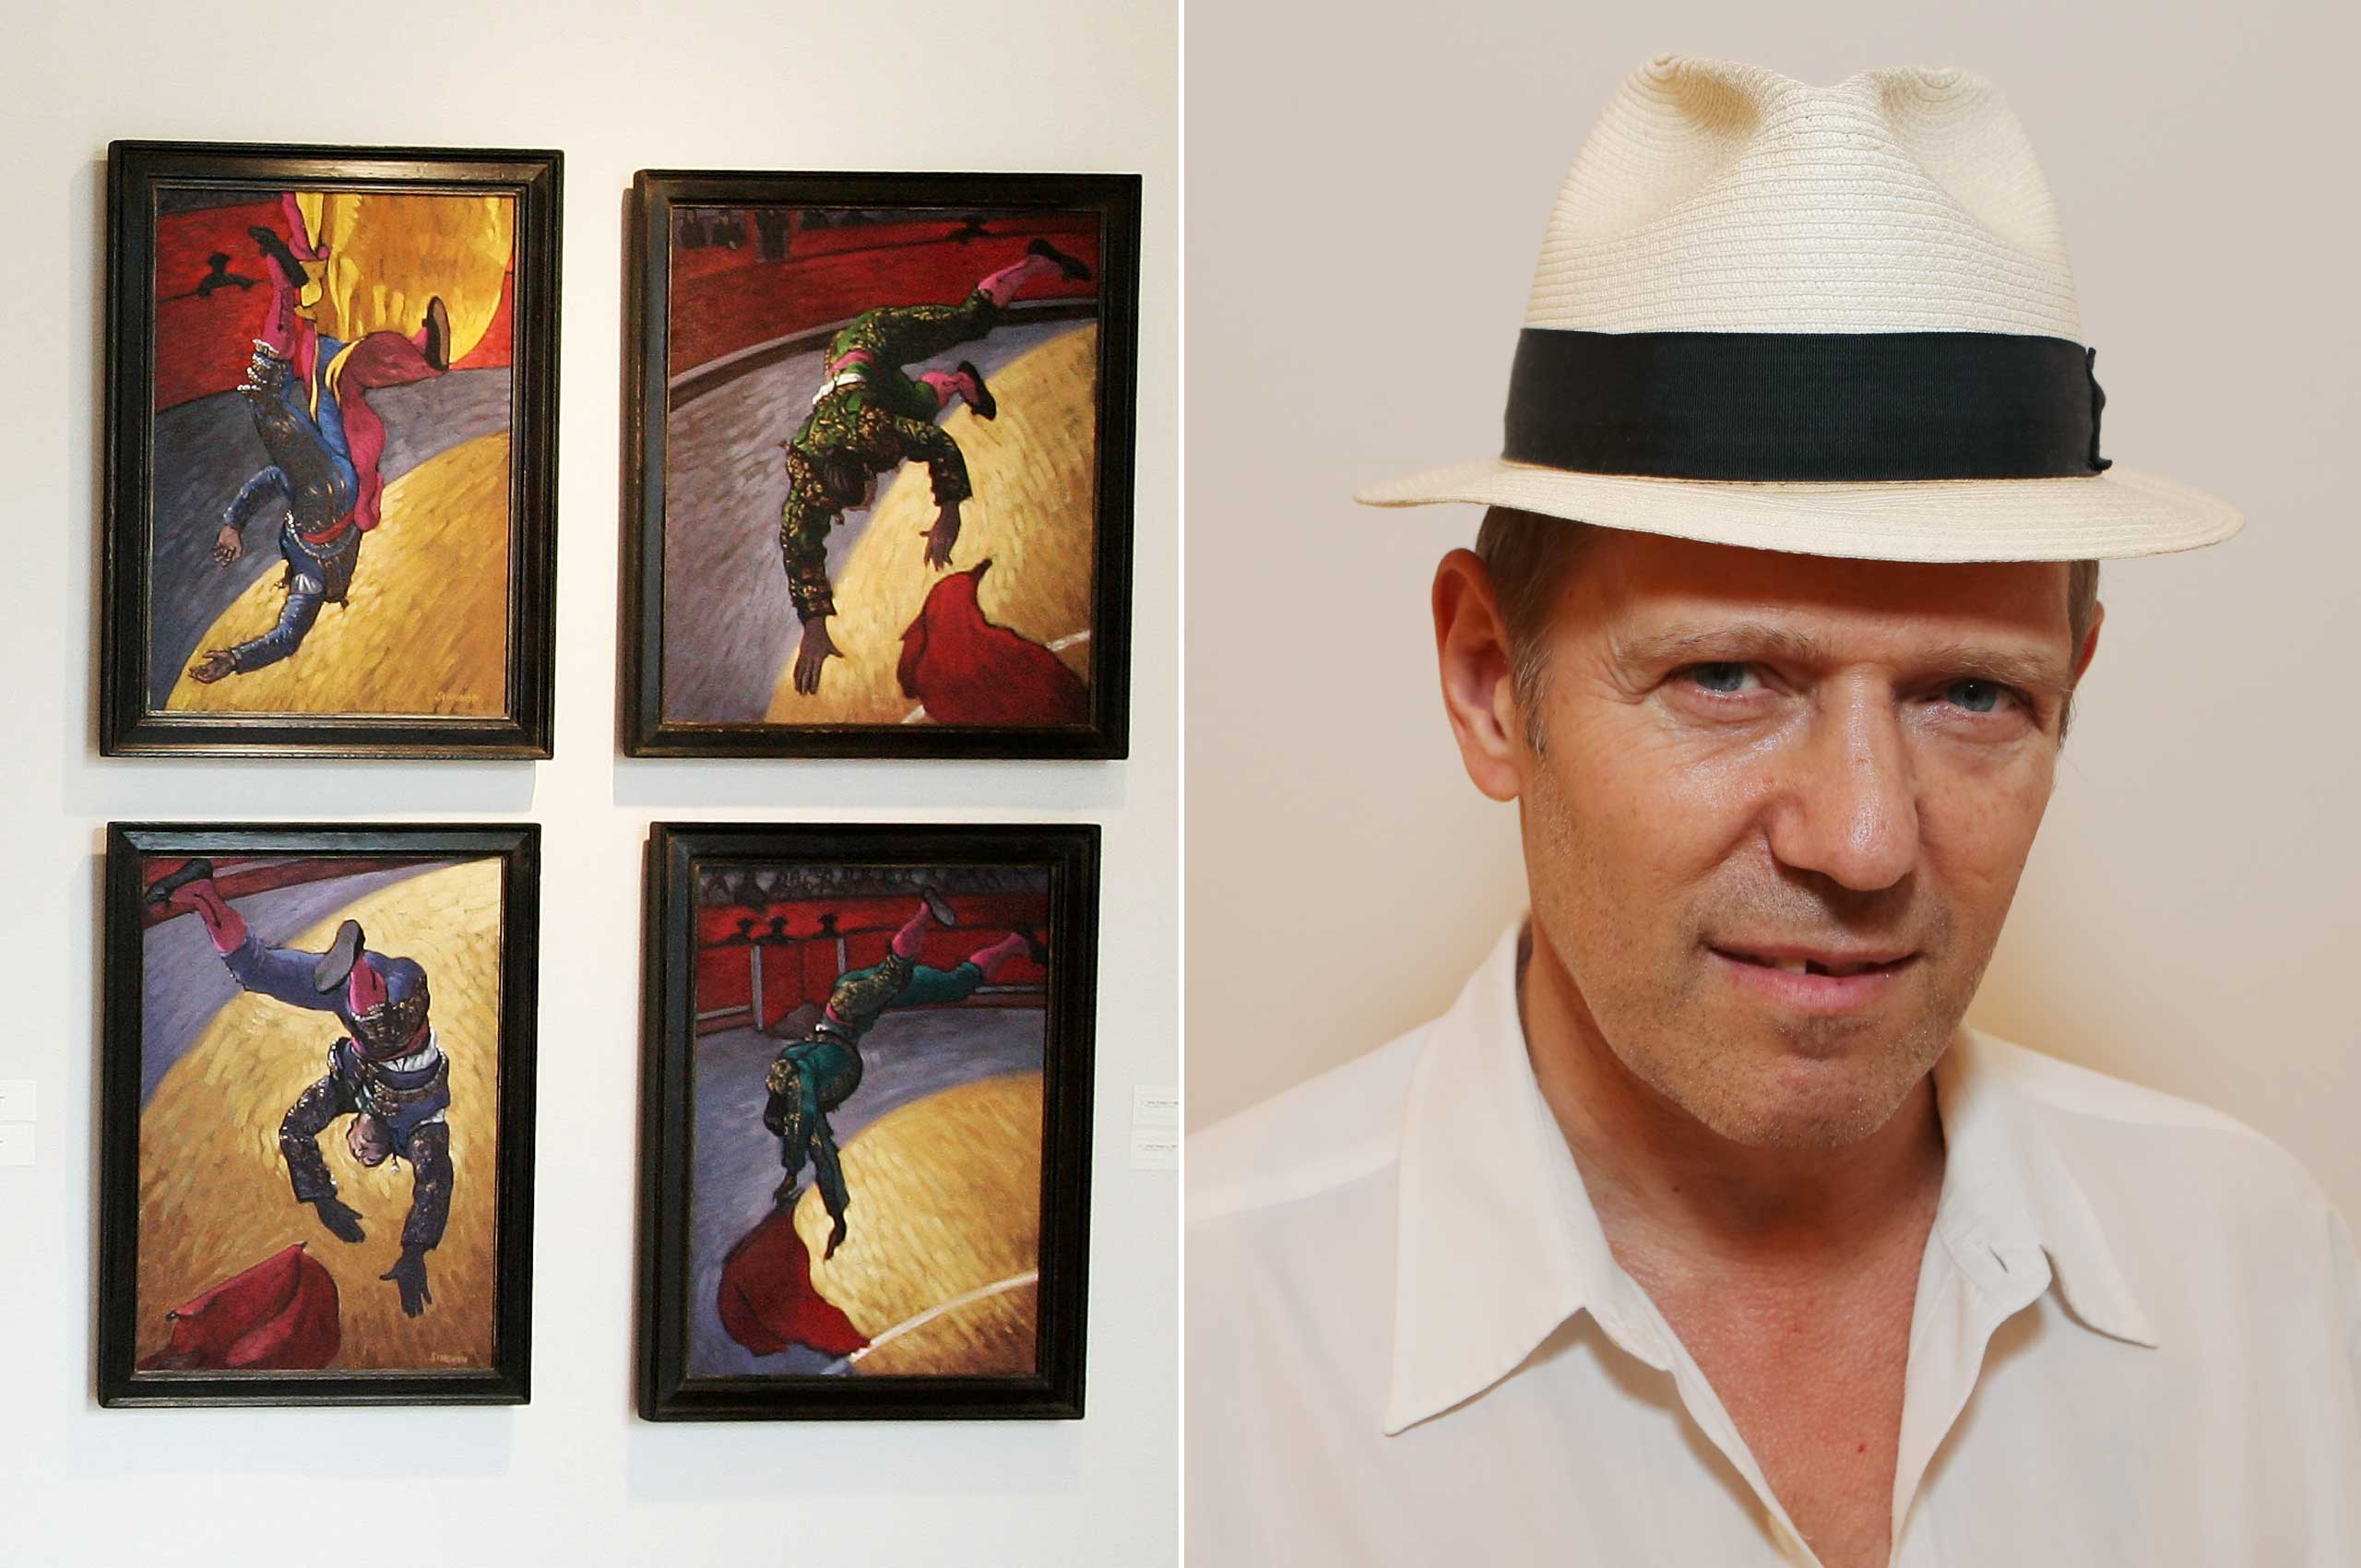 Paul Simonon, bassist for The Clash, created this series of oil paintings interpreting bullfights.